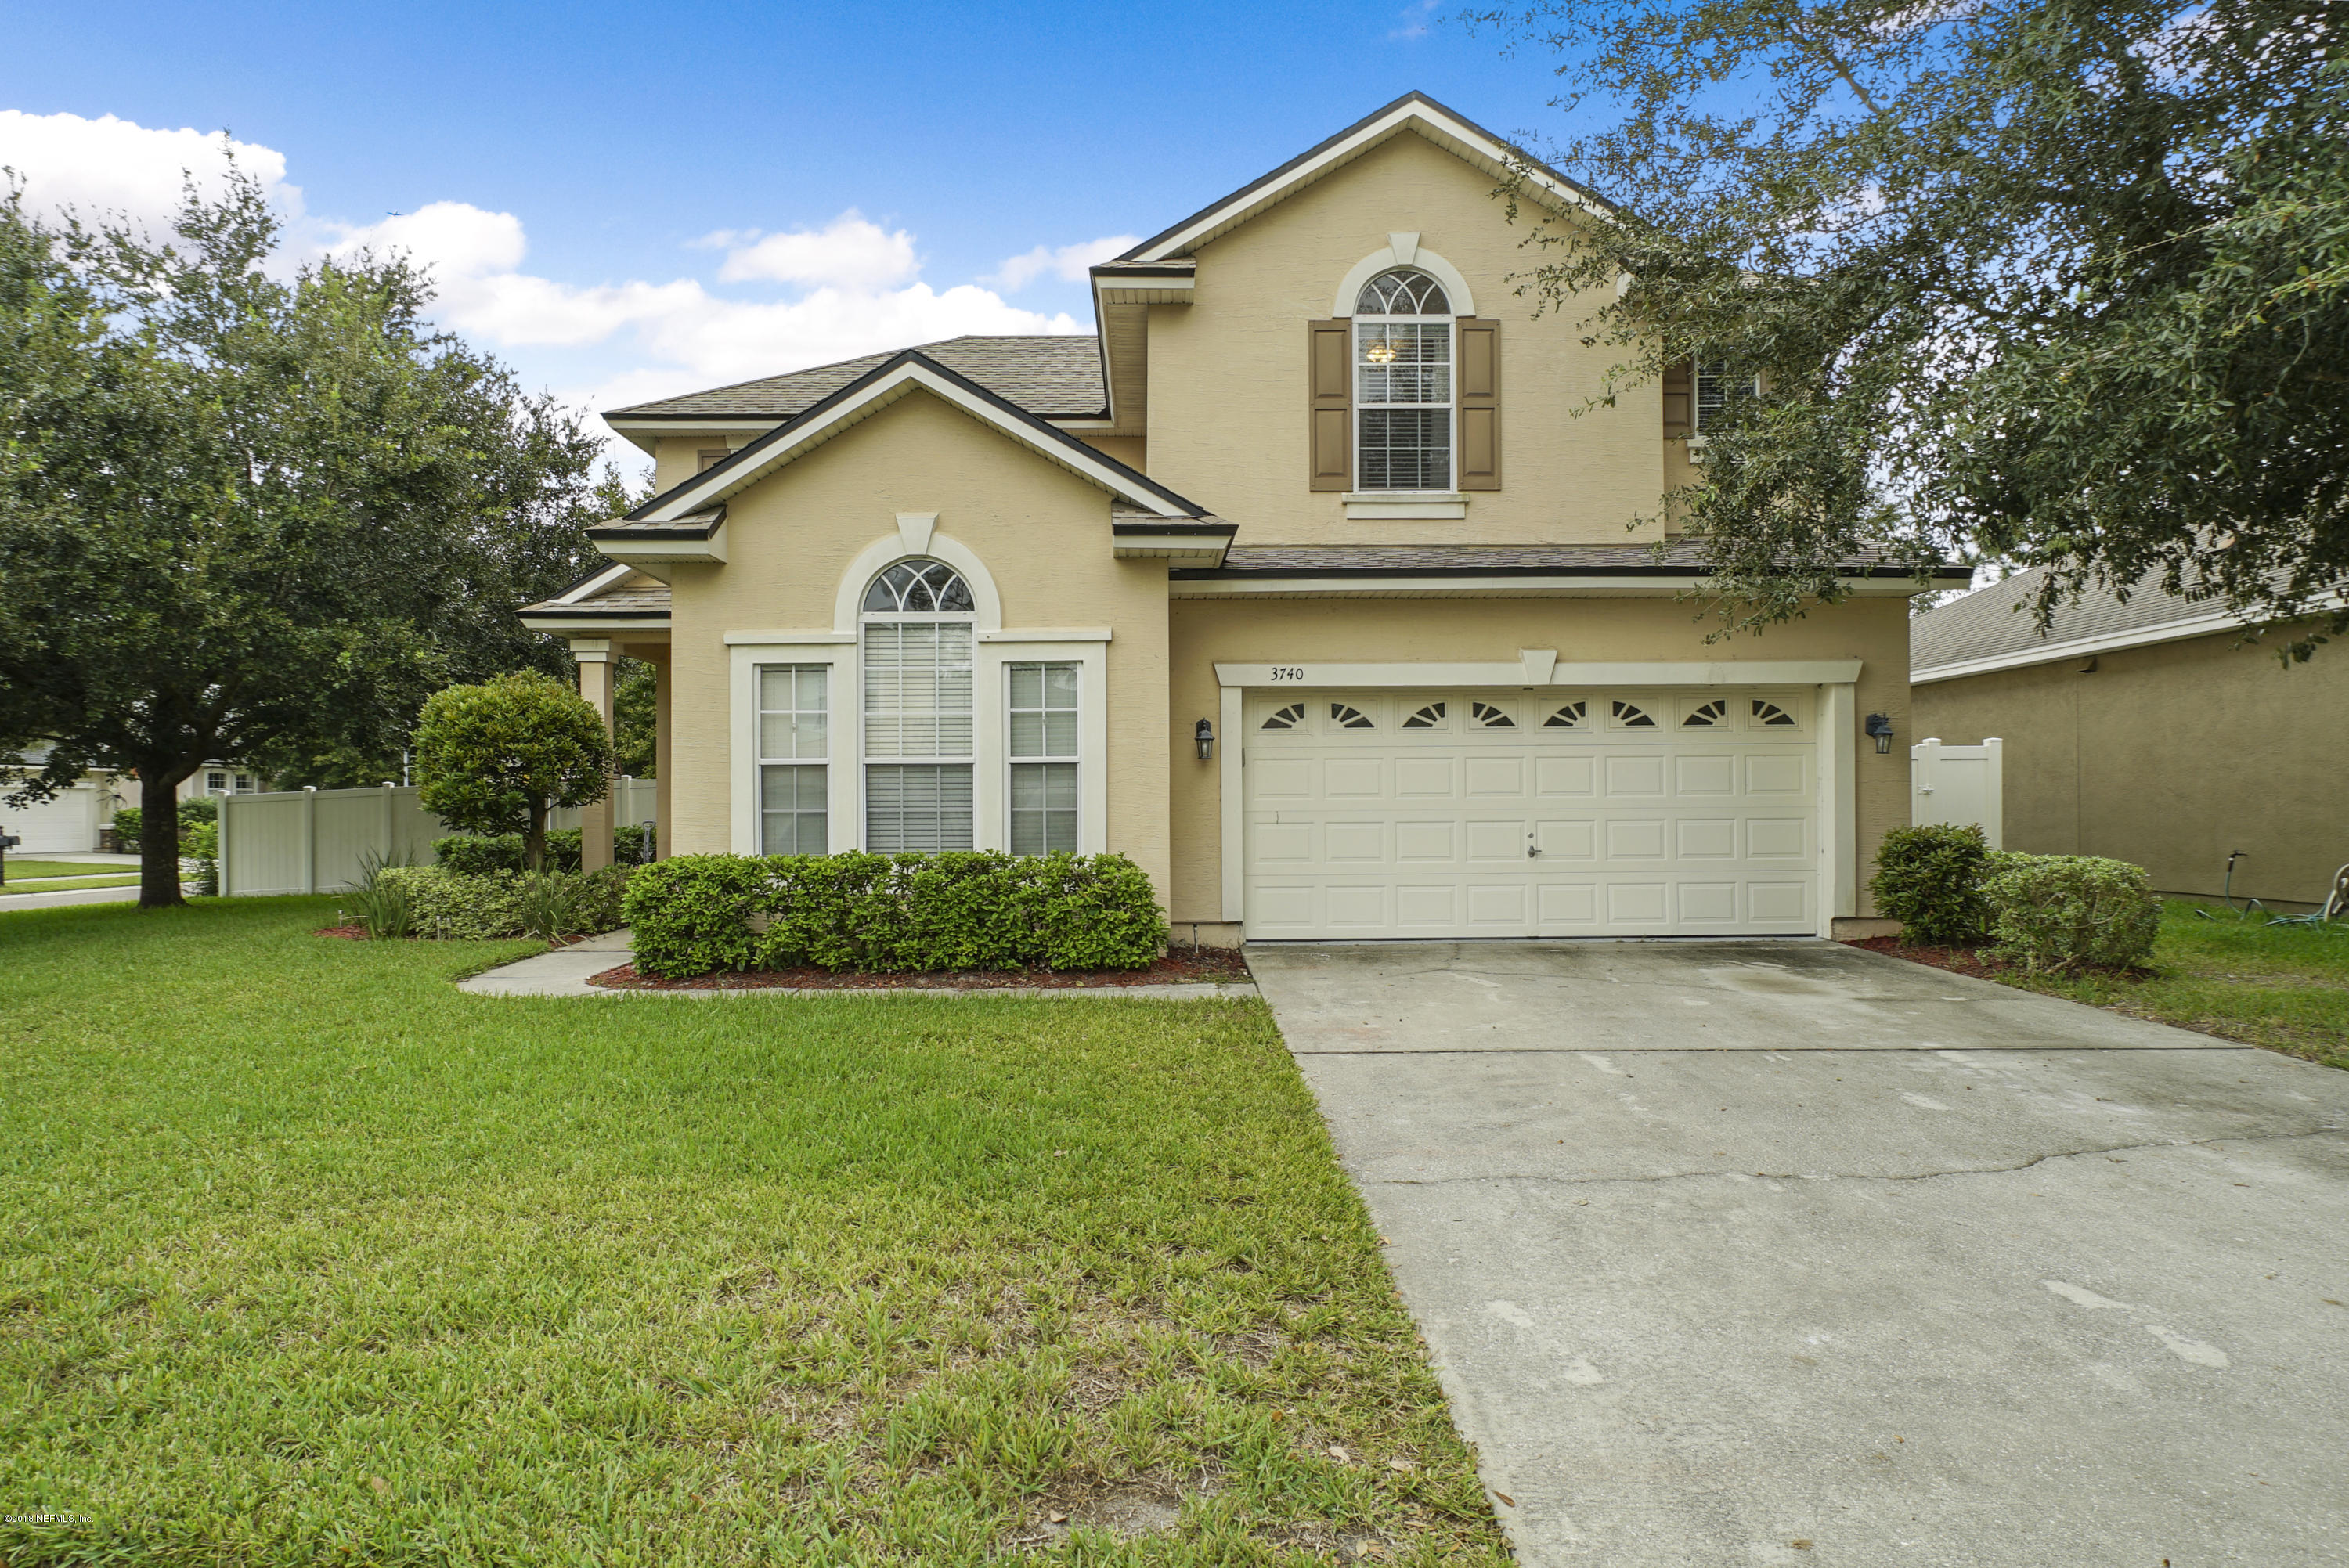 3740 OLD HICKORY, ORANGE PARK, FLORIDA 32065, 4 Bedrooms Bedrooms, ,2 BathroomsBathrooms,Residential - single family,For sale,OLD HICKORY,964914